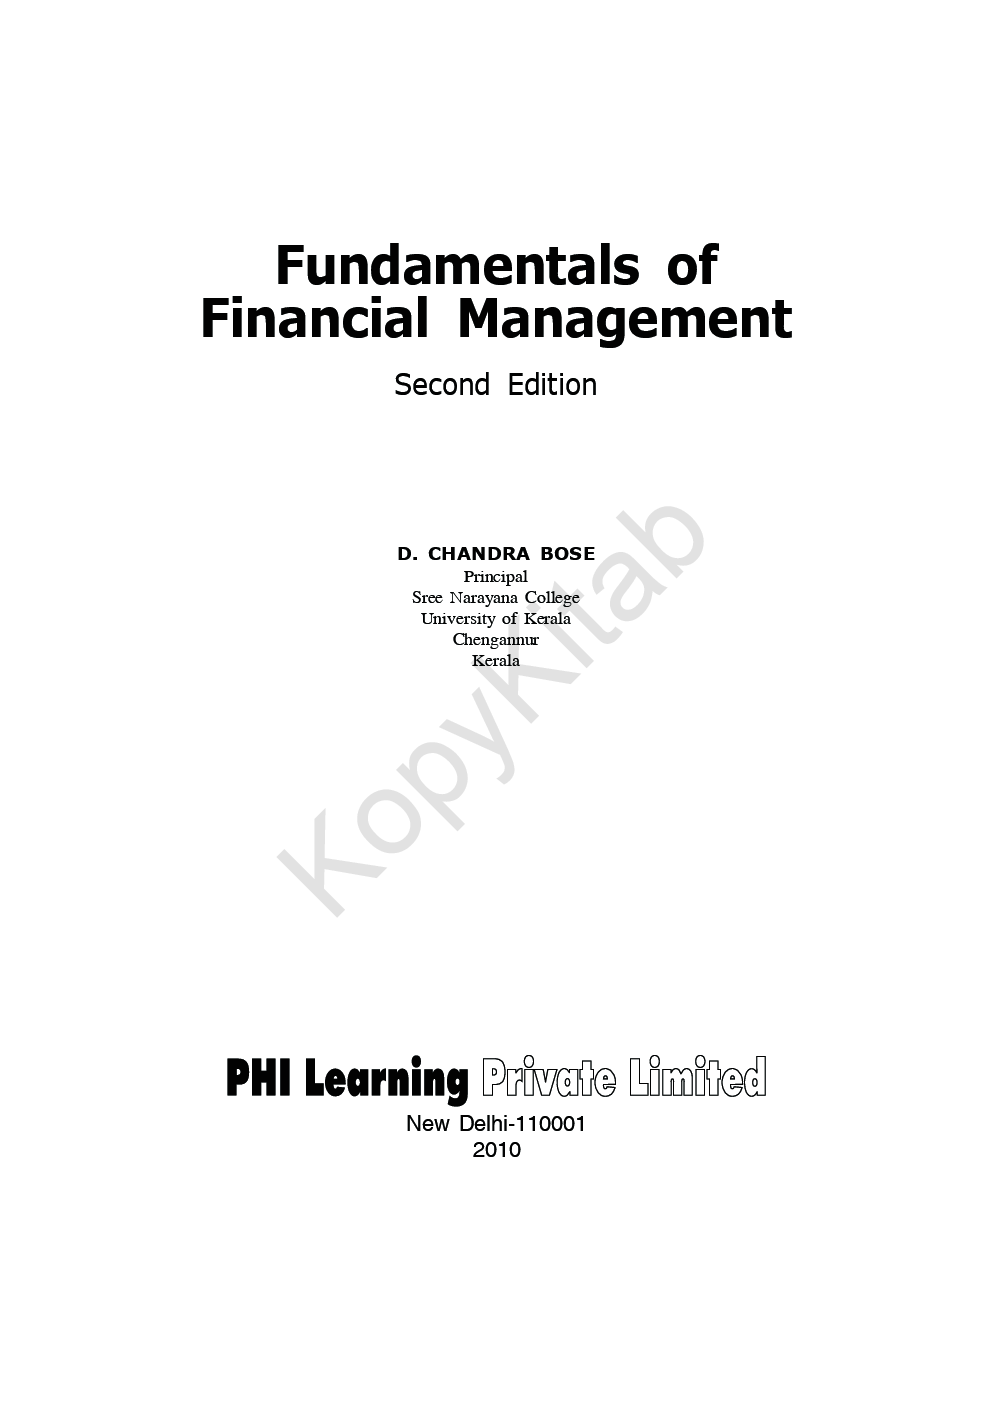 Download Fundamentals Of Financial Management by D